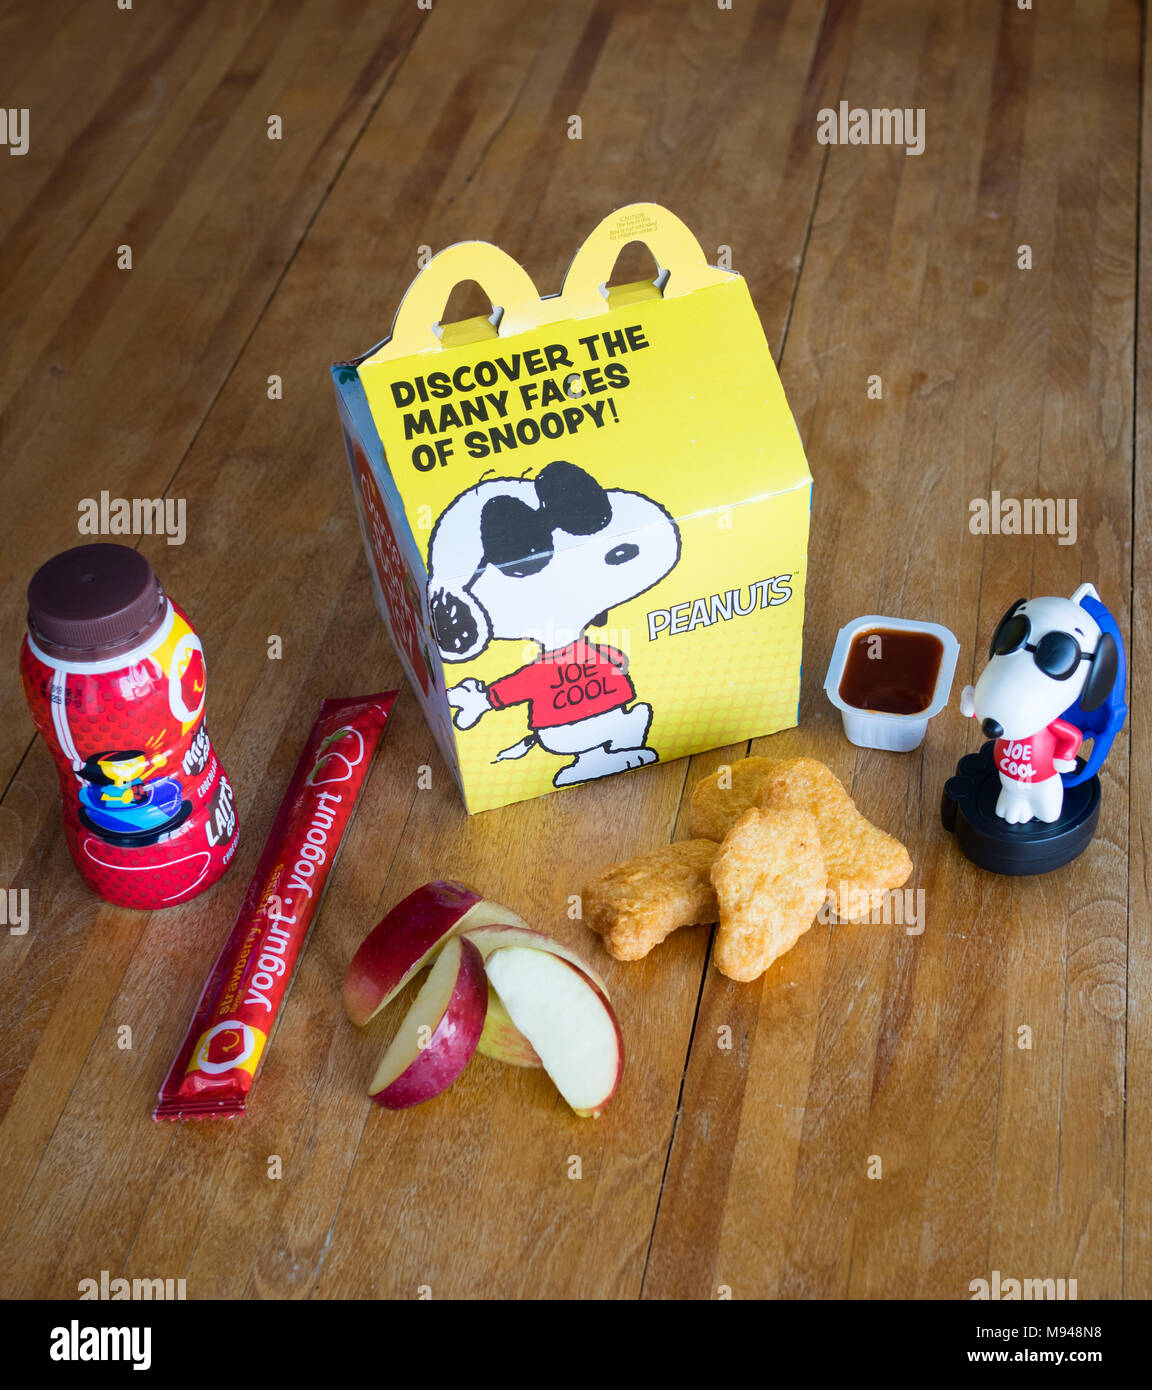 A McDonald's Happy Meal with Chicken McNuggets, apple wedges, chocolate milk, yogurt tube, and Snoopy toy. - Stock Image